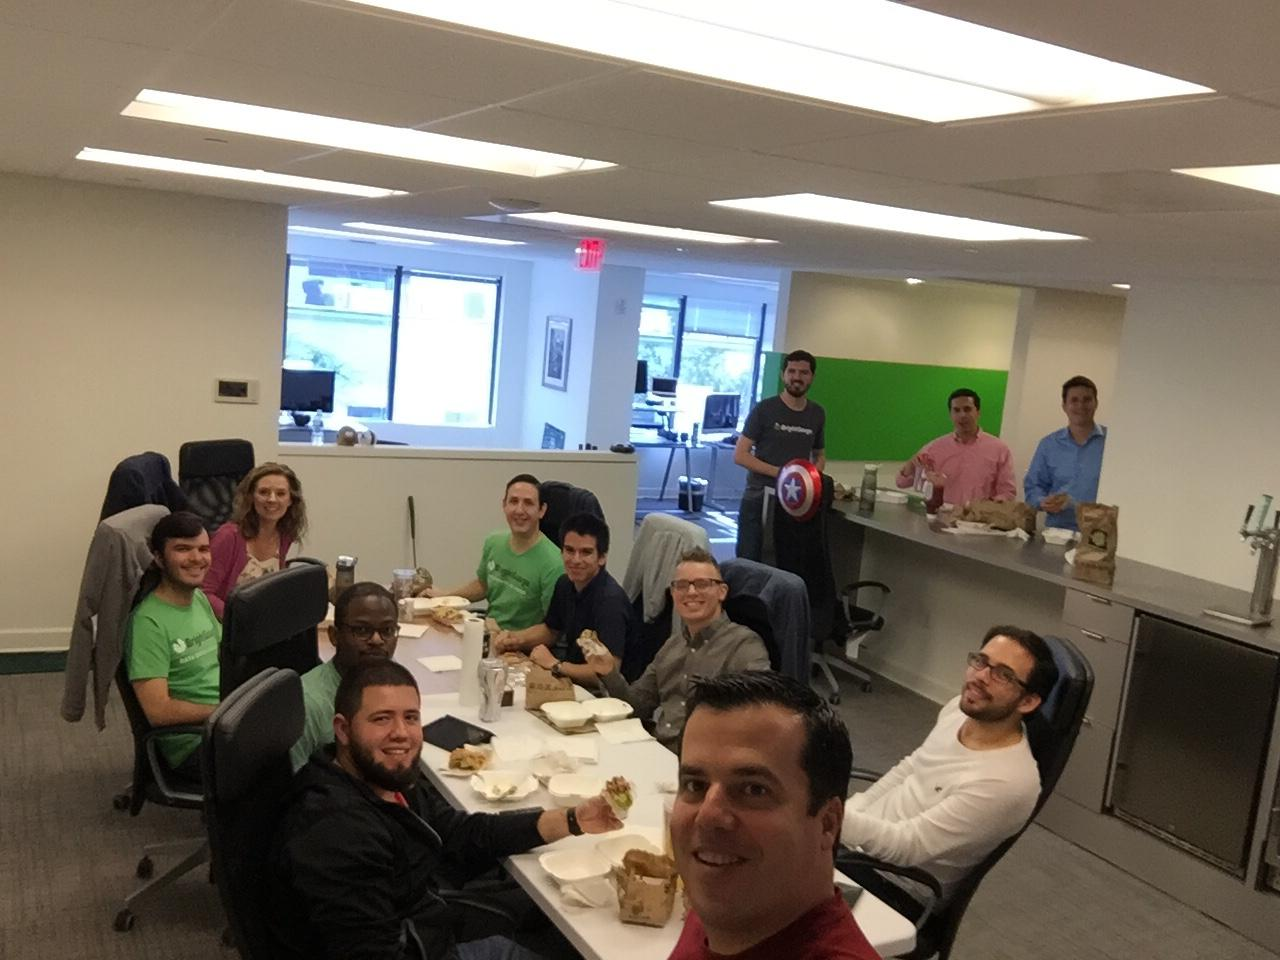 Meeting Hack: How Eating Together Maximizes our Team Collaboration